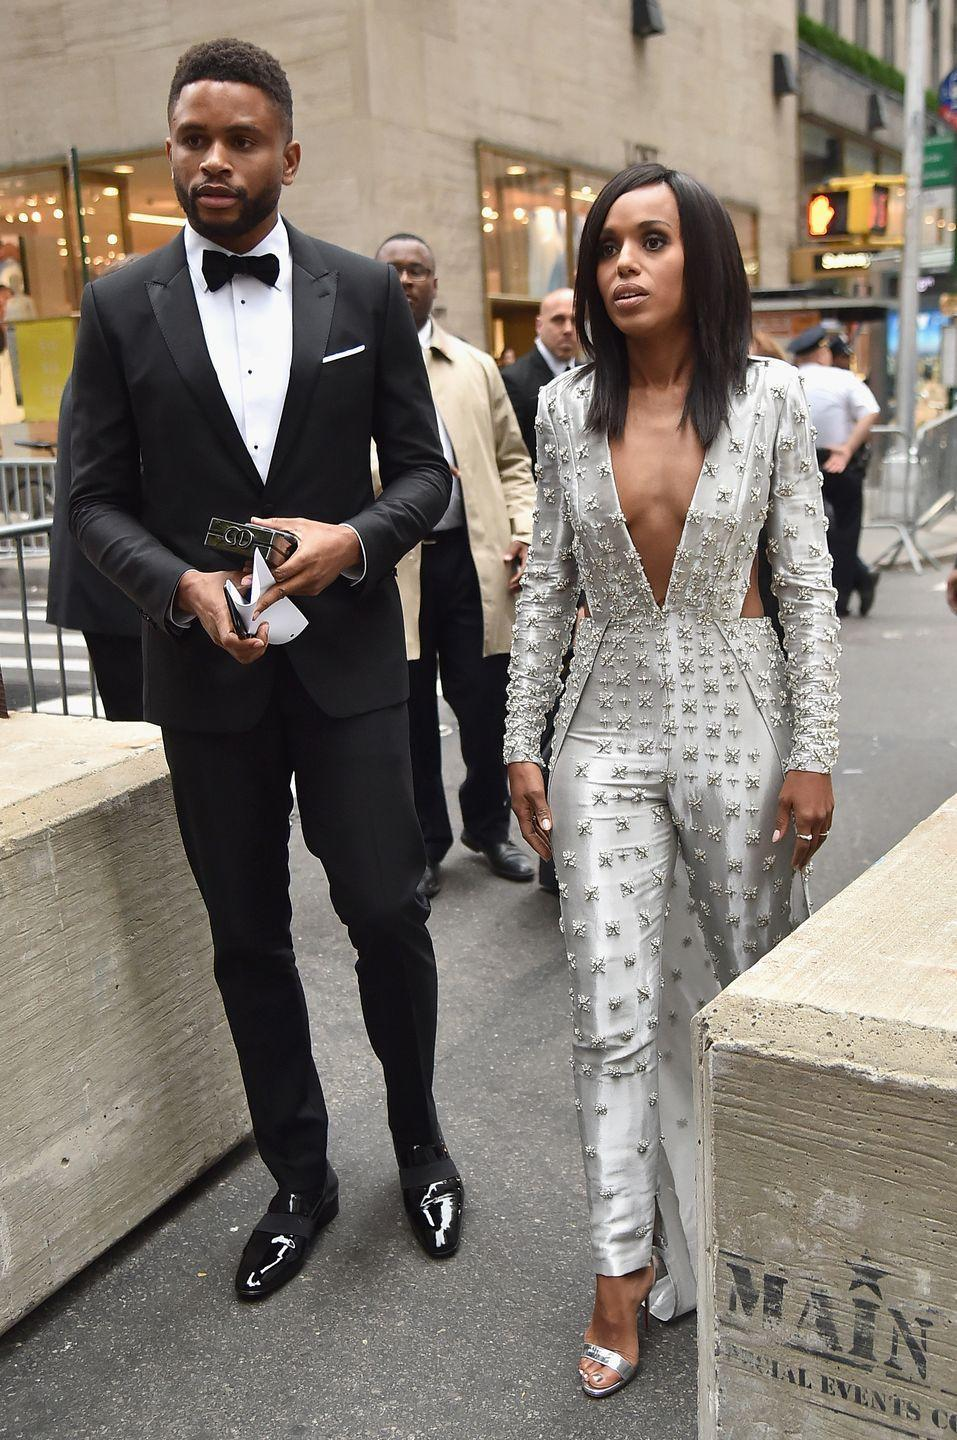 "<p>Kerry Washington keeps her private life, well, private, which is why some might not know she is married to famous cornerback Nnamdi Asomugha. Kerry and Nnamdi met while she was performing in Broadway's <em>Race</em>. ""The last time I did theater, it completely transformed my life. That's where I met my husband,"" Kerry told <a href=""https://www.oprahmag.com/entertainment/tv-movies/a31359878/kerry-washington-husband-nnamdi-asomugha/%E2%80%9CThe%20last%20time%20I%20did%20theater,%20it%20completely%20transformed%20my%20life.%20That%E2%80%99s%20where%20I%20met%20my%20husband.%E2%80%9D"" rel=""nofollow noopener"" target=""_blank"" data-ylk=""slk:Marie Claire"" class=""link rapid-noclick-resp""><em>Marie Claire</em></a> in 2018. The couple started dating in 2012 and was <a href=""https://people.com/celebrity/kerry-washington-weds-nnamdi-asomugha/"" rel=""nofollow noopener"" target=""_blank"" data-ylk=""slk:secretly married in 2013"" class=""link rapid-noclick-resp"">secretly married in 2013</a>.</p>"